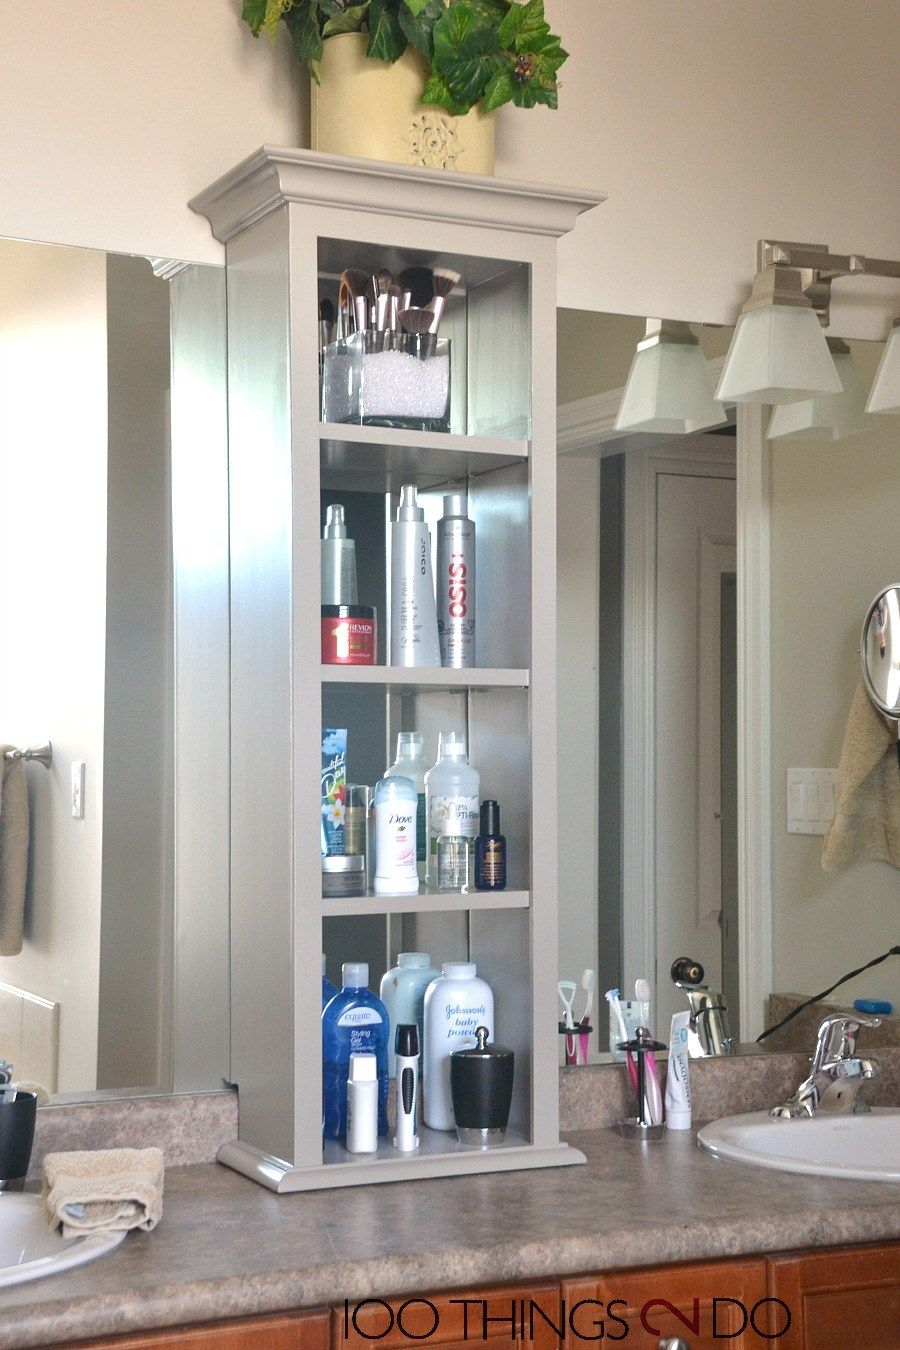 Bathroom Storage Tower | Pinterest | Bathroom storage, Bathroom ...